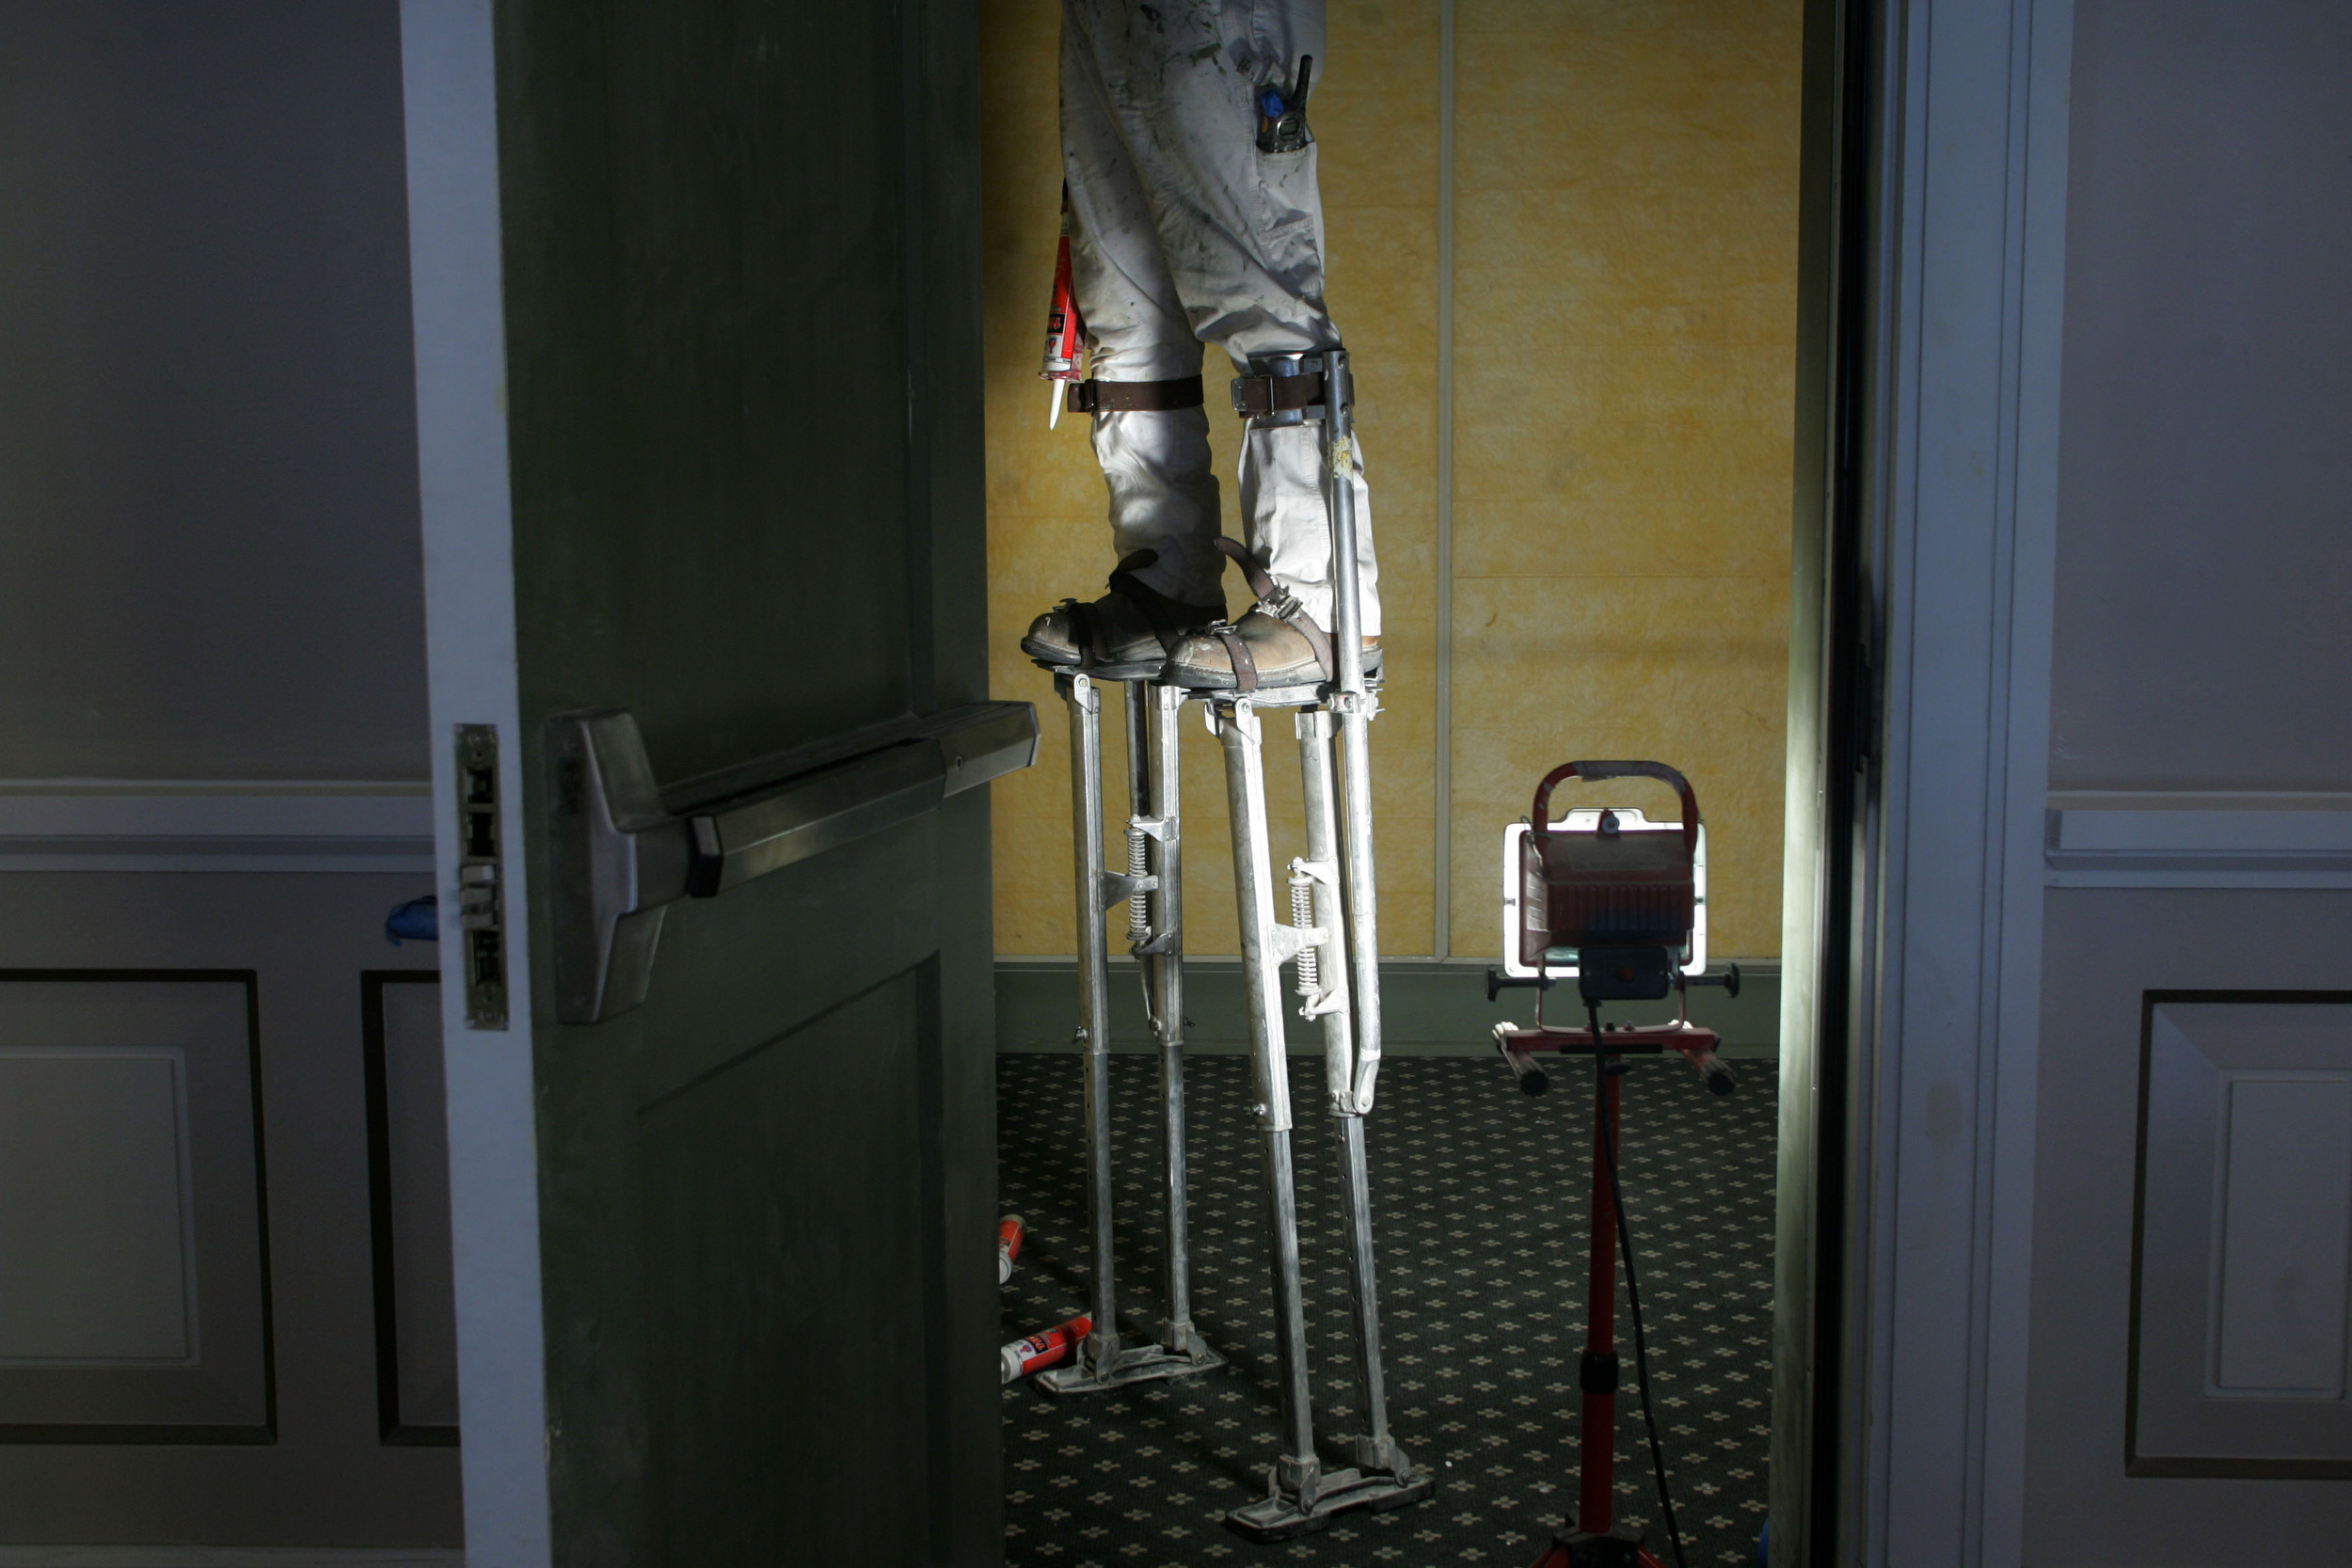 Hector Trujano with Bradley Coatings uses stilts to paint an interior room.